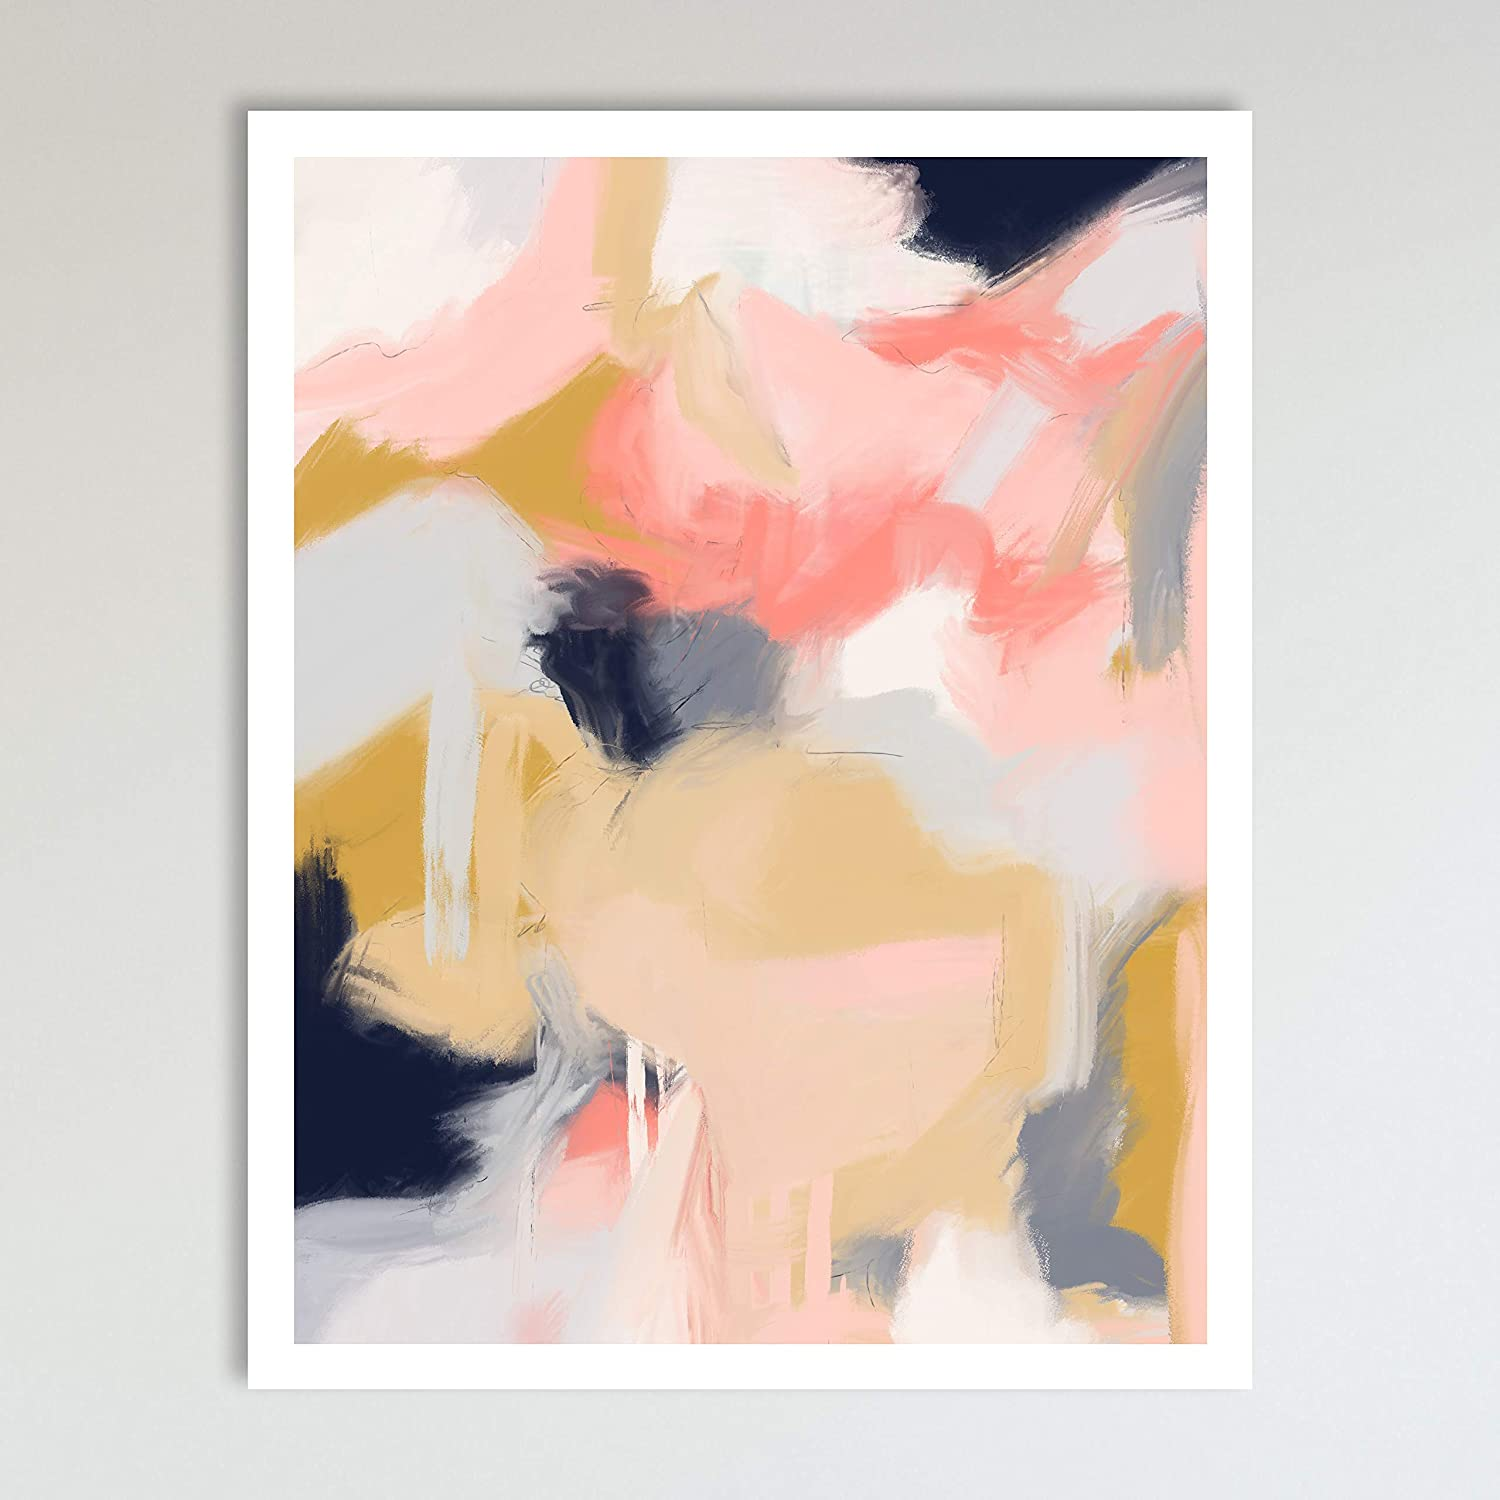 Morning Blossoms, Minimalist Abstract Art, Pink and Cream Contemporary Wall Art For Bedroom and Home Decor, Modern Boho Art Print Flowers Floral Poster Wall Decor 11x14 Inches, Unframed